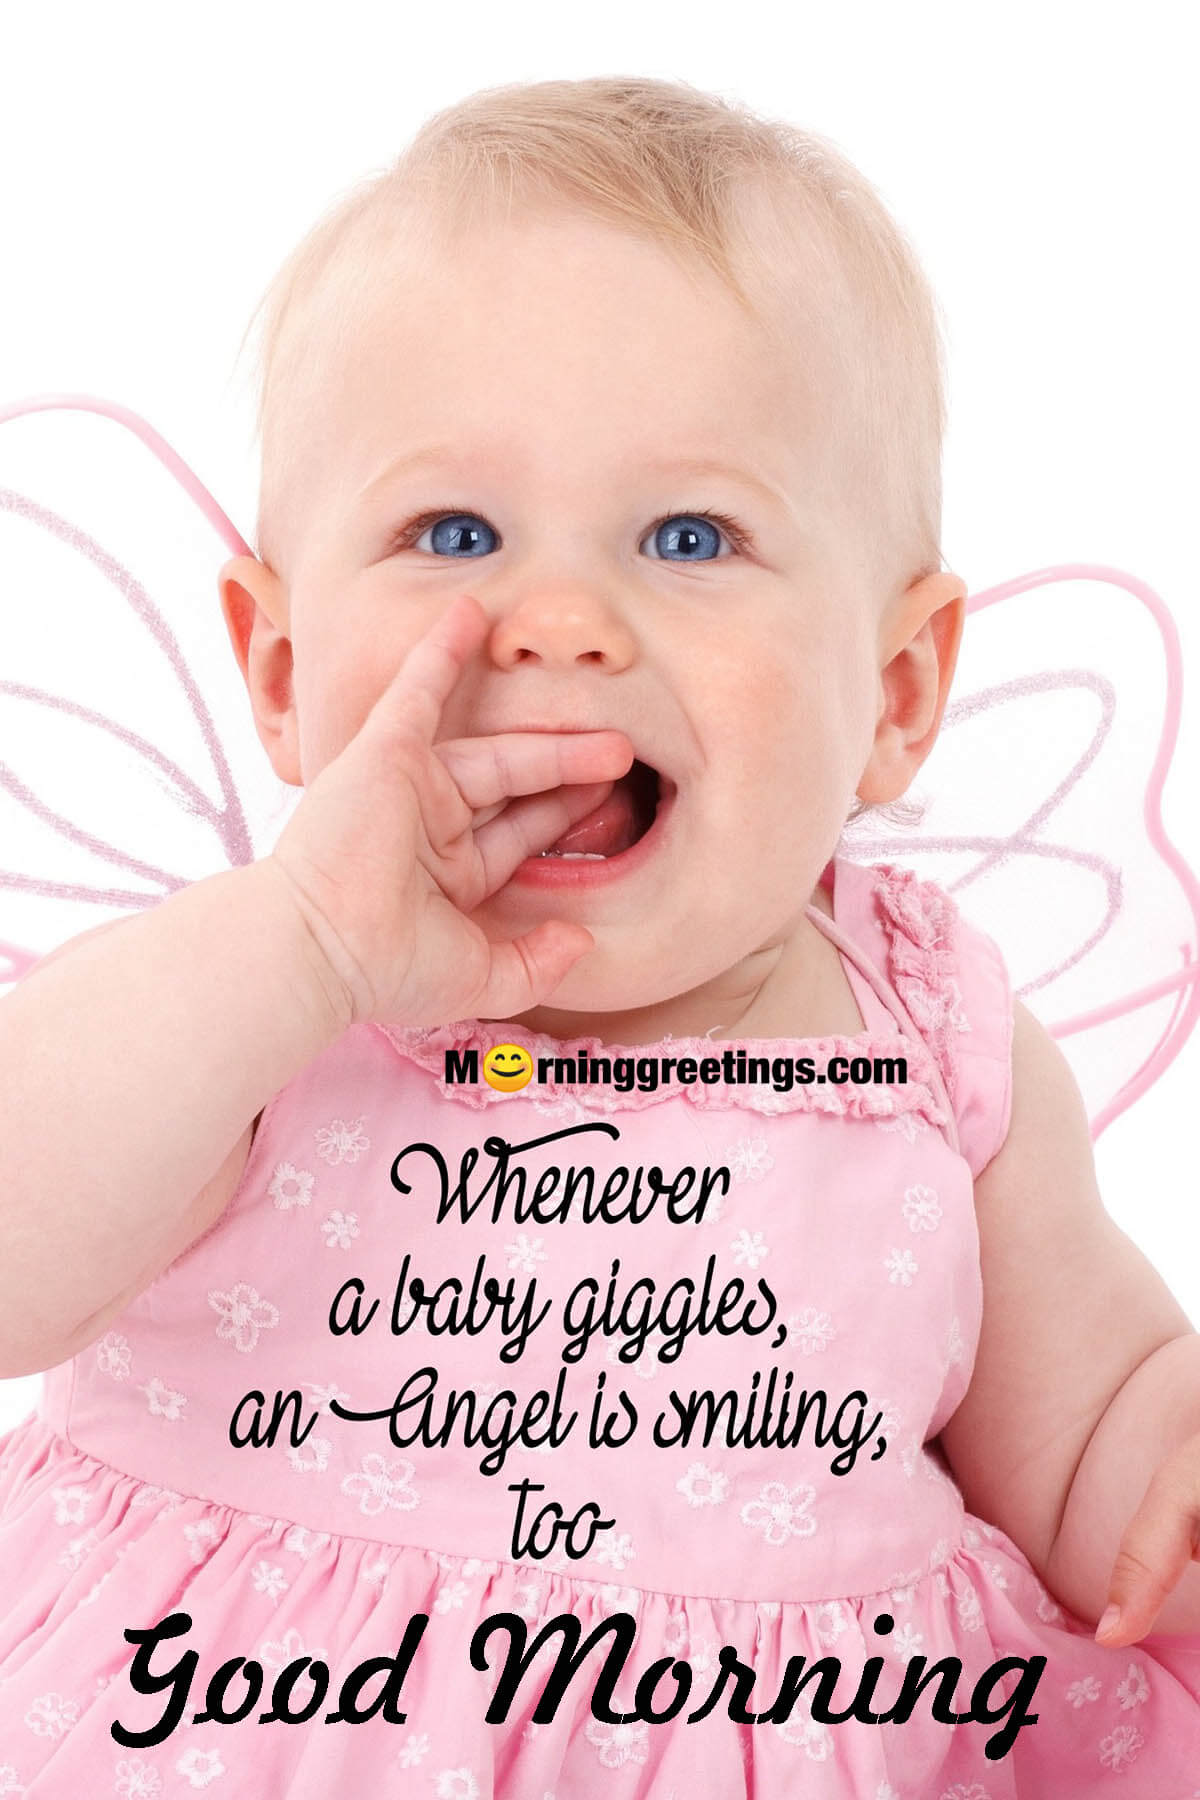 Baby Pictures Saying Good Morning : pictures, saying, morning, Morning, Angel, Quotes, Pictures, Greetings, Wishes, Images